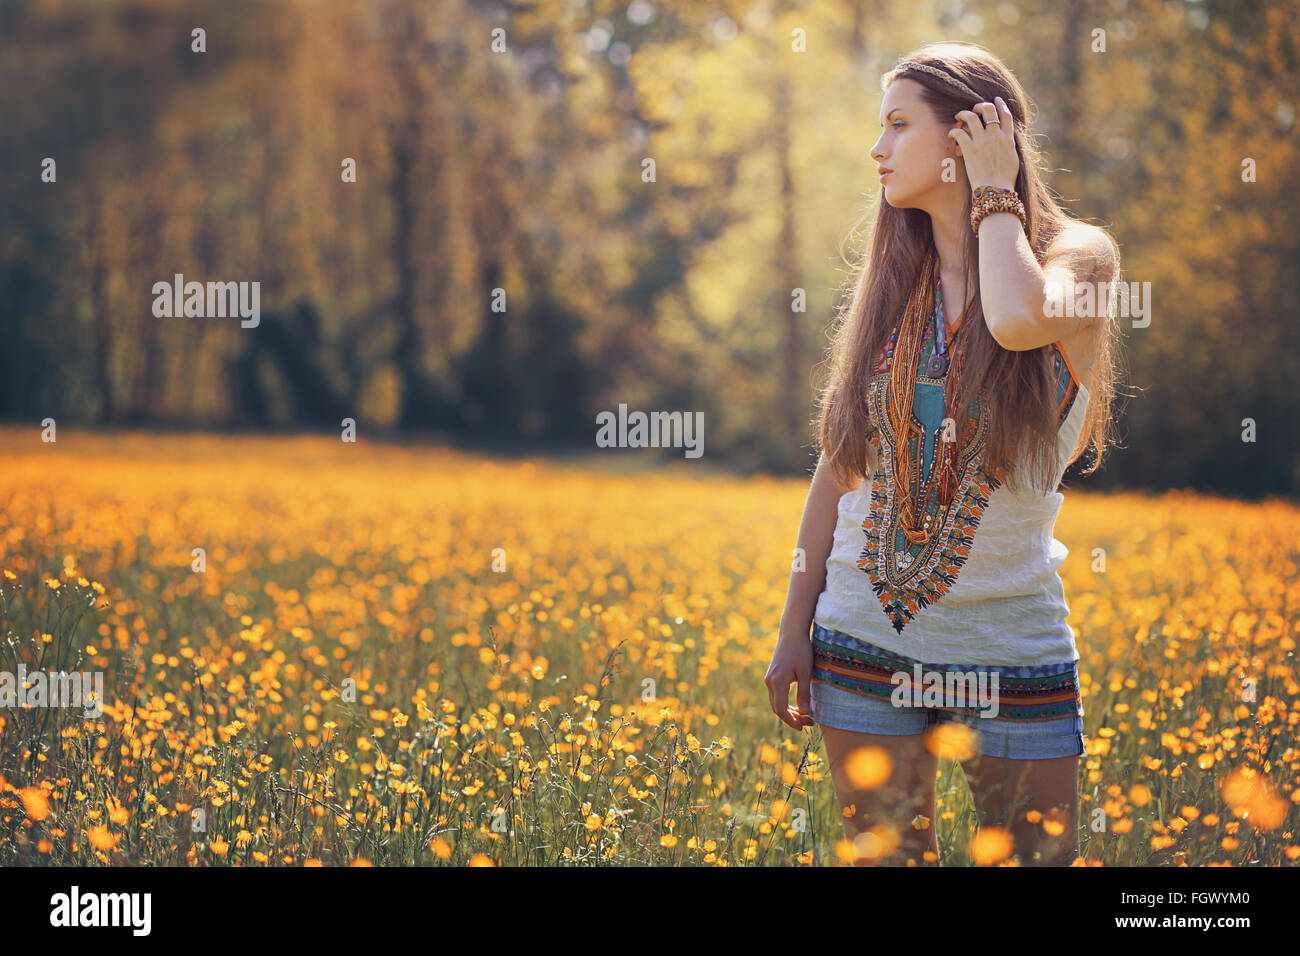 Beautiful hippie woman in flower field . Summer colors - Stock Image